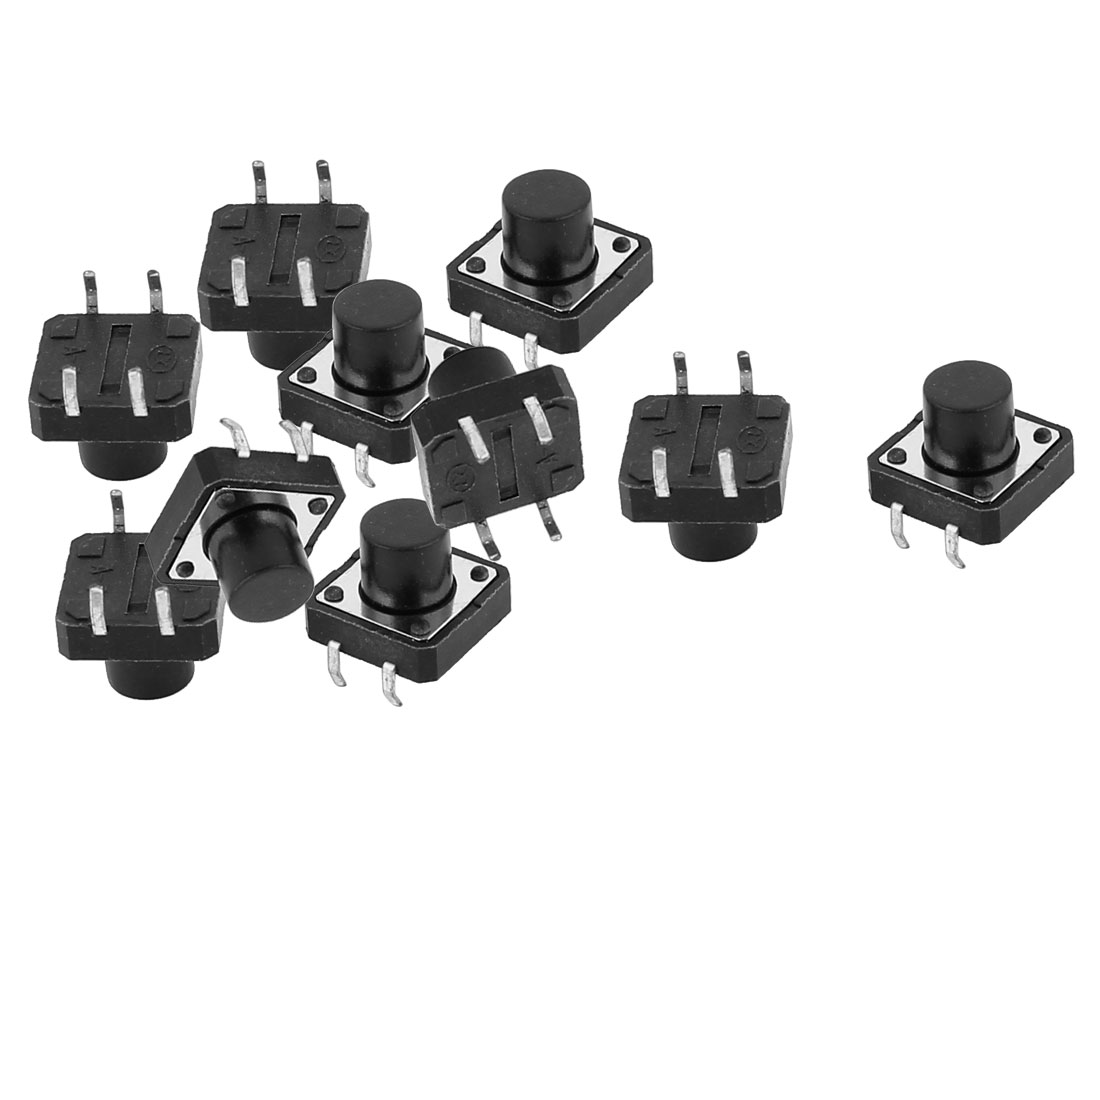 10Pcs 4 Terminals Momentary DIP Push Button Tact Tactile Switch 12mmx12mmx12mm